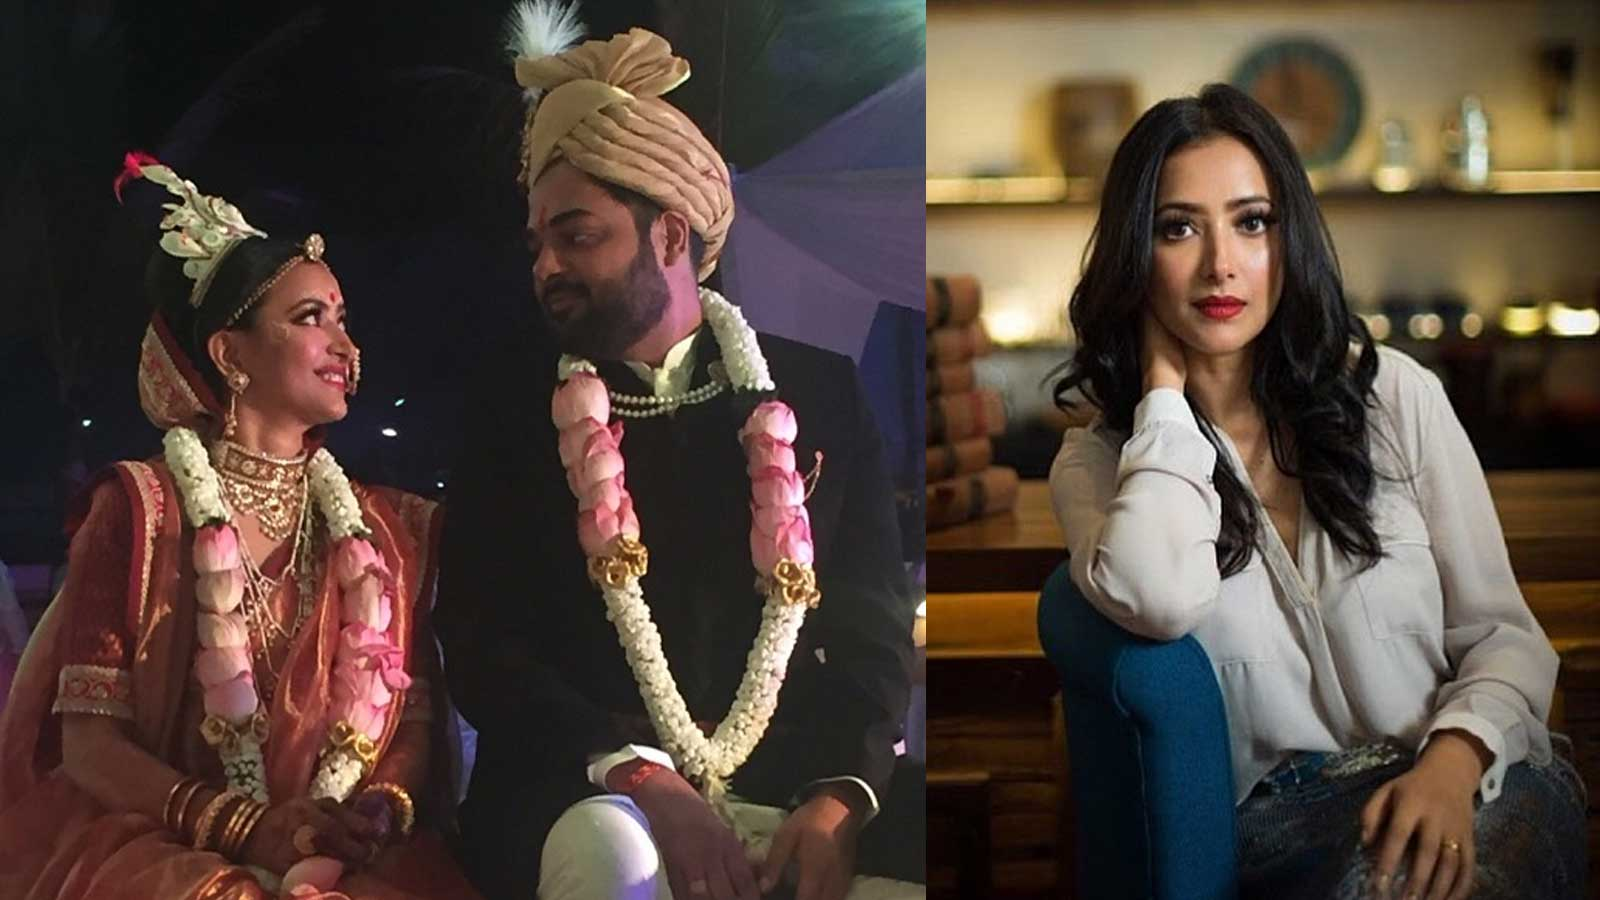 shweta-basu-prasad-announces-separation-with-husband-rohit-mittal-ahead-of-first-wedding-anniversary